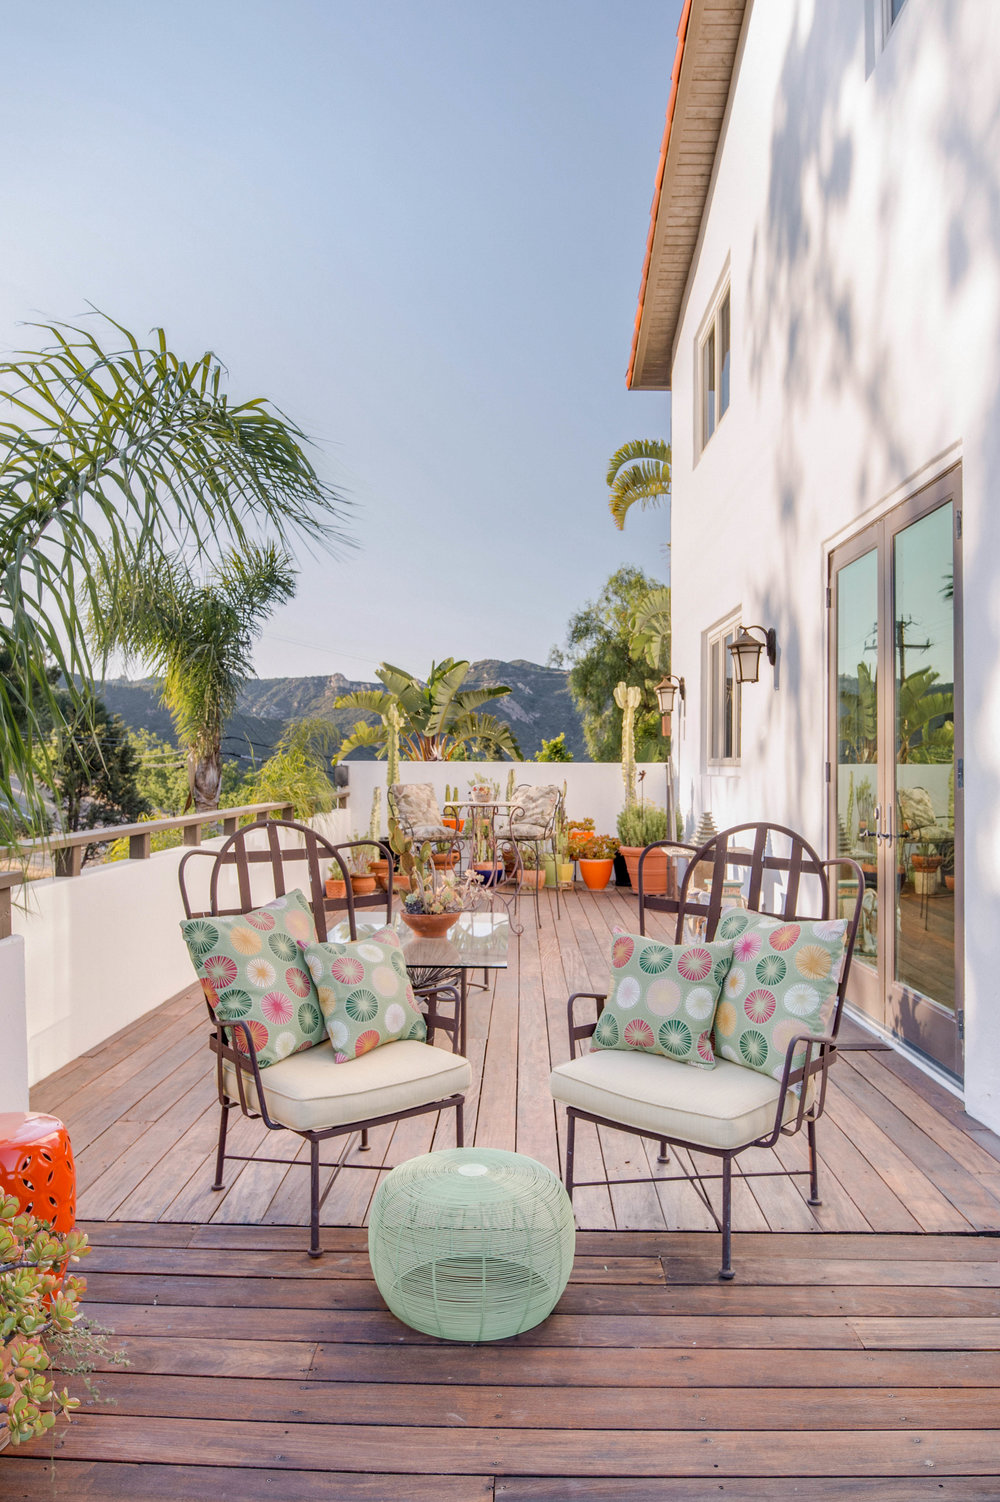 023 1912 Lookout Road Malibu Los Angeles For Sale Lease The Malibu Life Team Luxury Real Estate.jpg